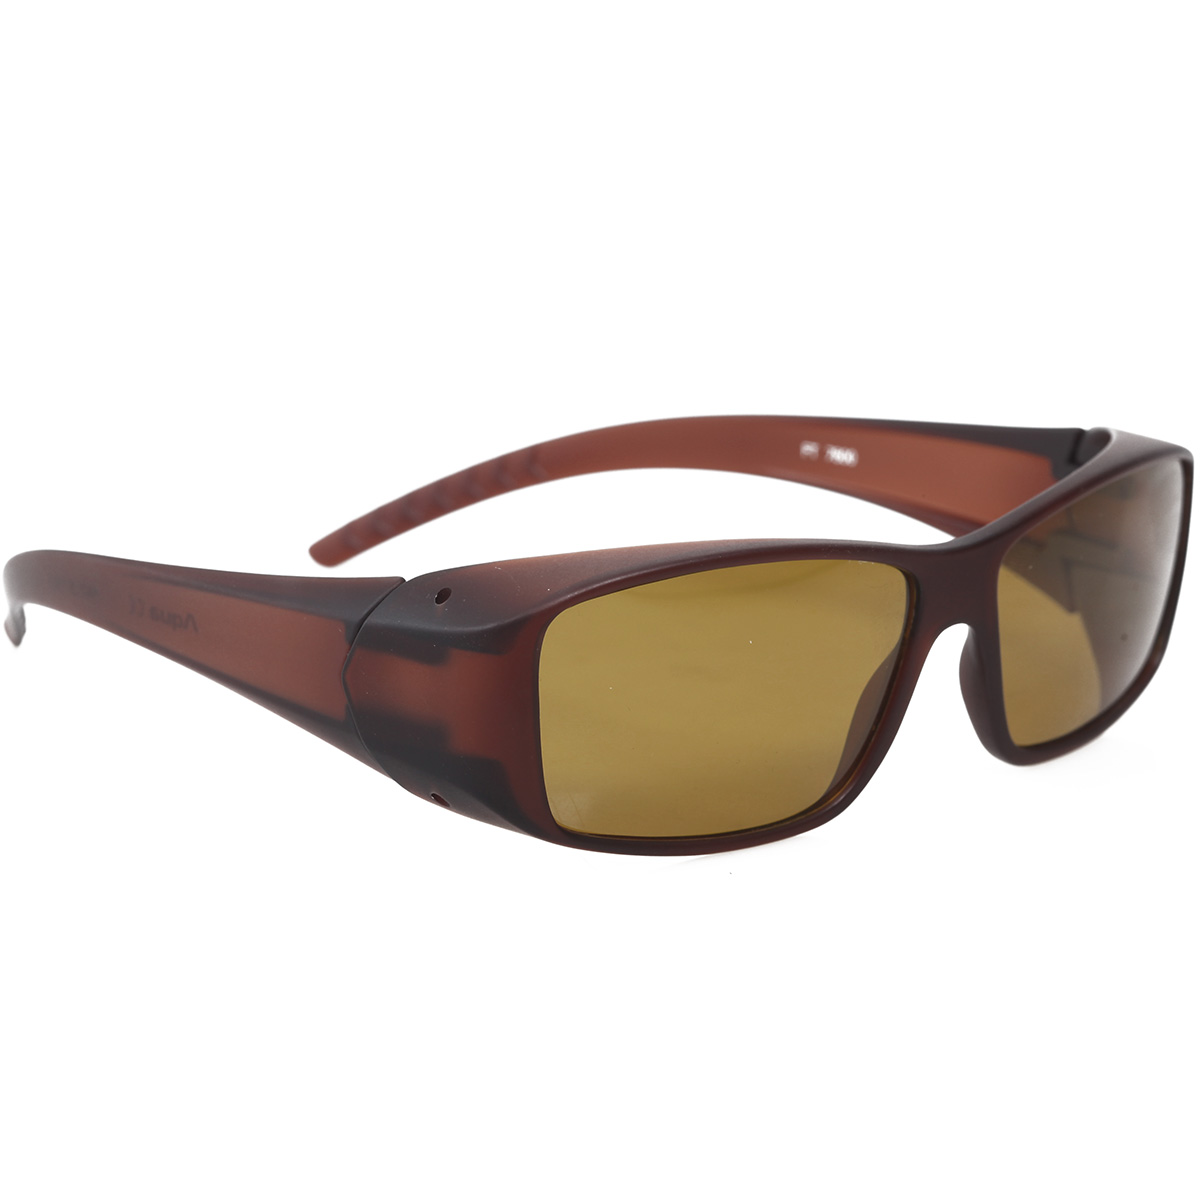 Best polarized sunglasses for trout fishing louisiana for Best fishing glasses